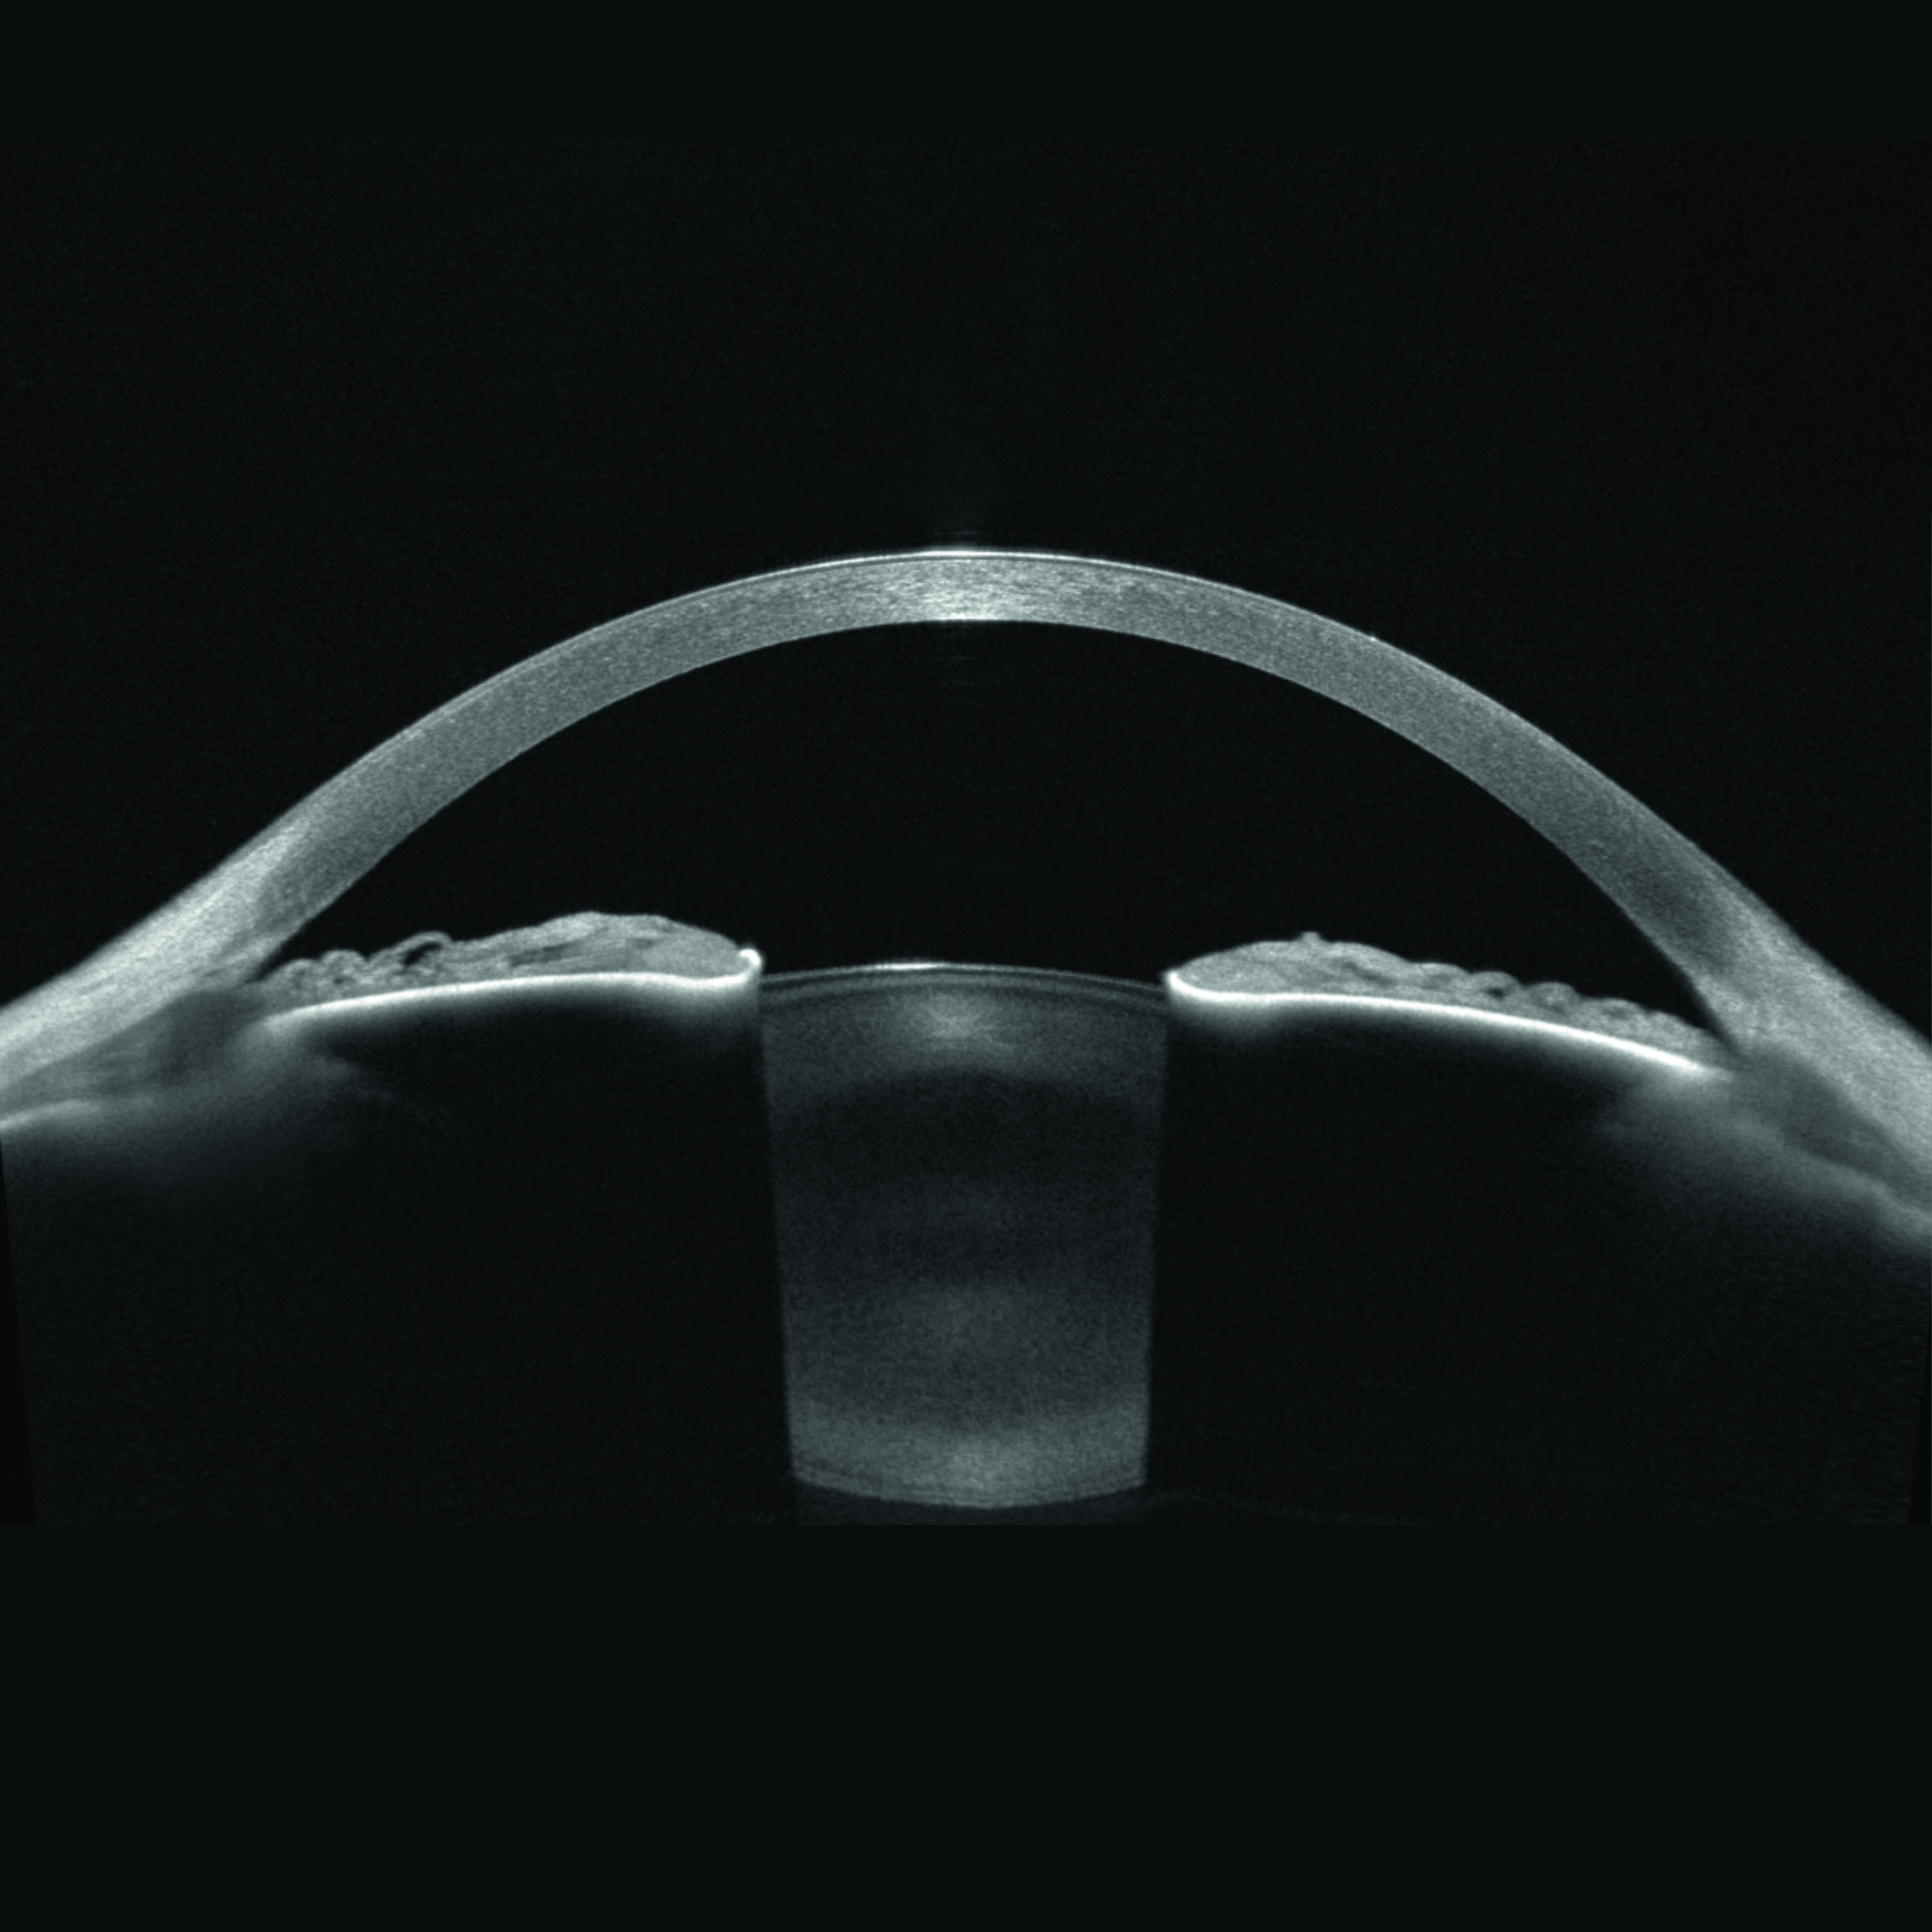 High-resolution visualization of the entire anterior segment, from the anterior surface of the cornea to the posterior surface of the lens.